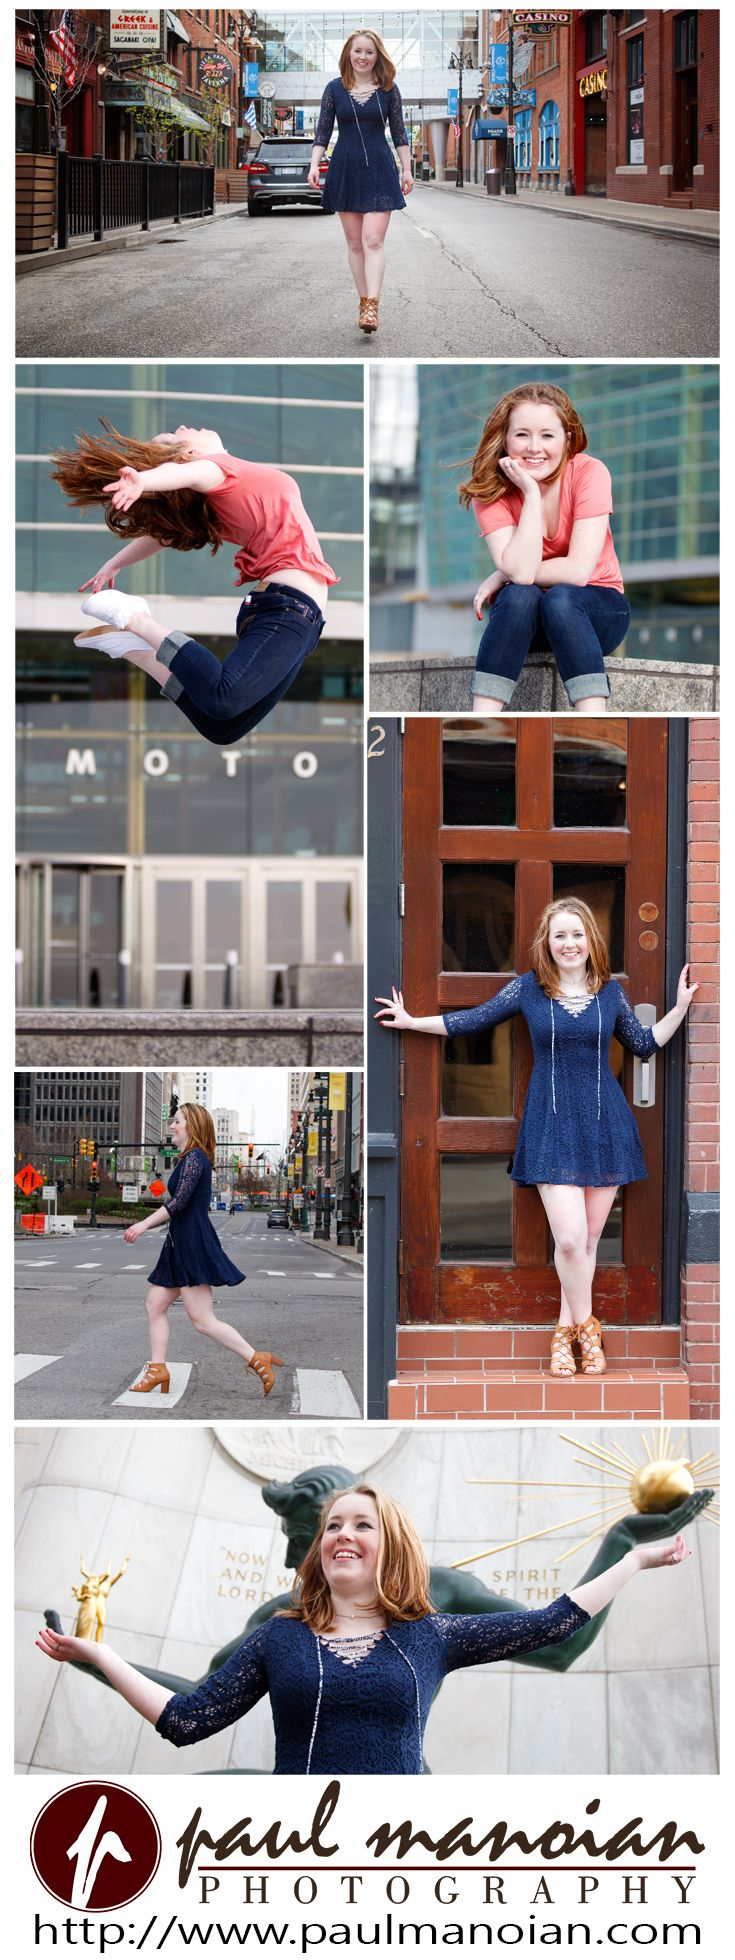 Senior pictures pose ideas for girls sitting on steps, walking in streets and more - Best Detroit Photographers